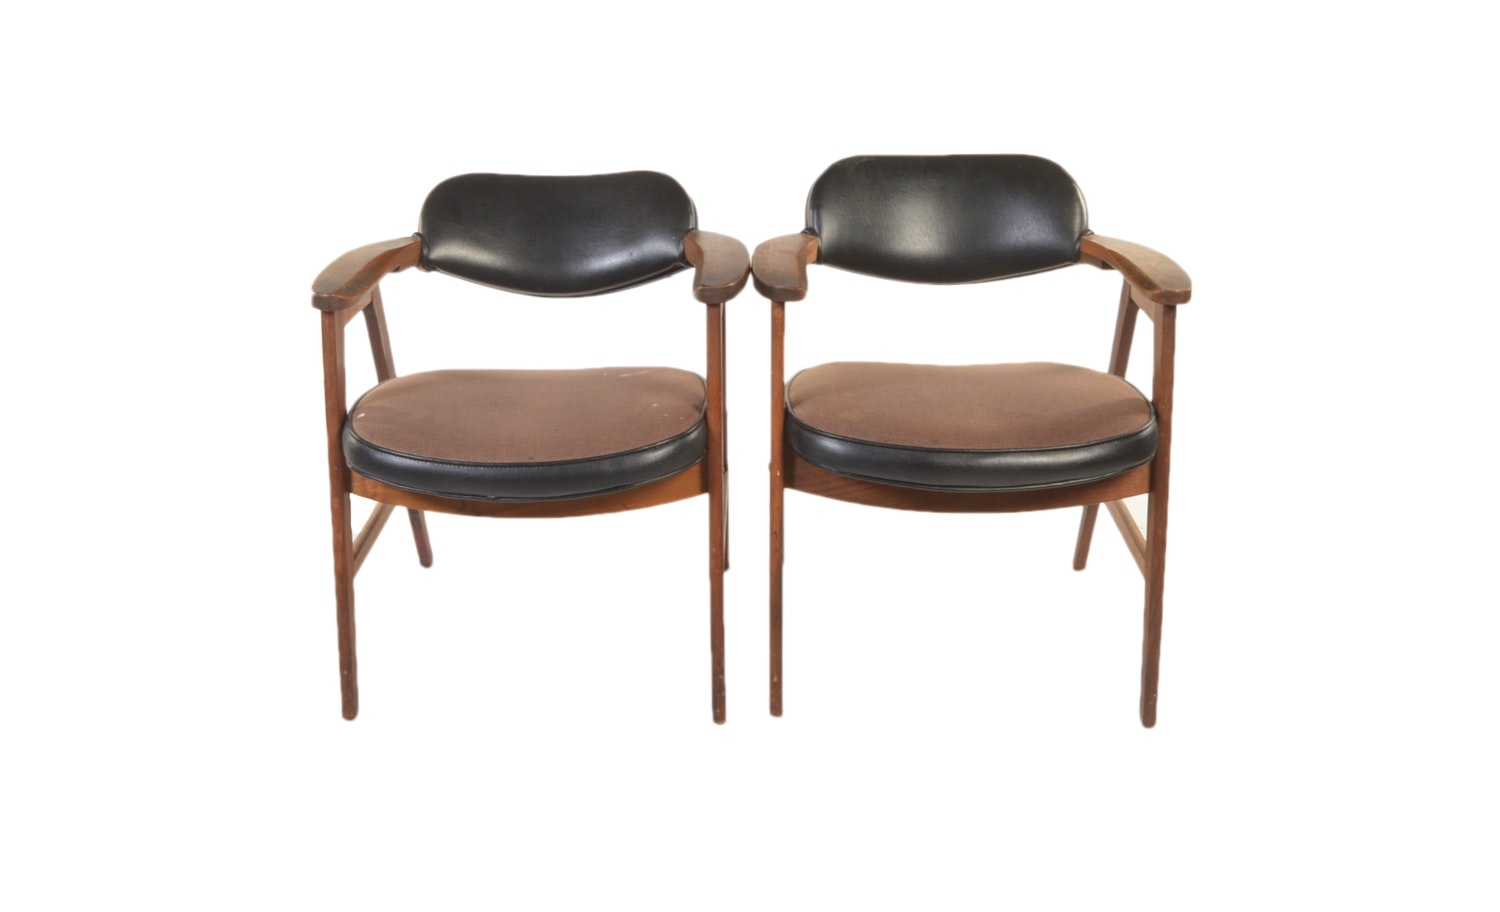 Vintage Danish Modern Upholstered Armchairs by Eck-Adams Corp.